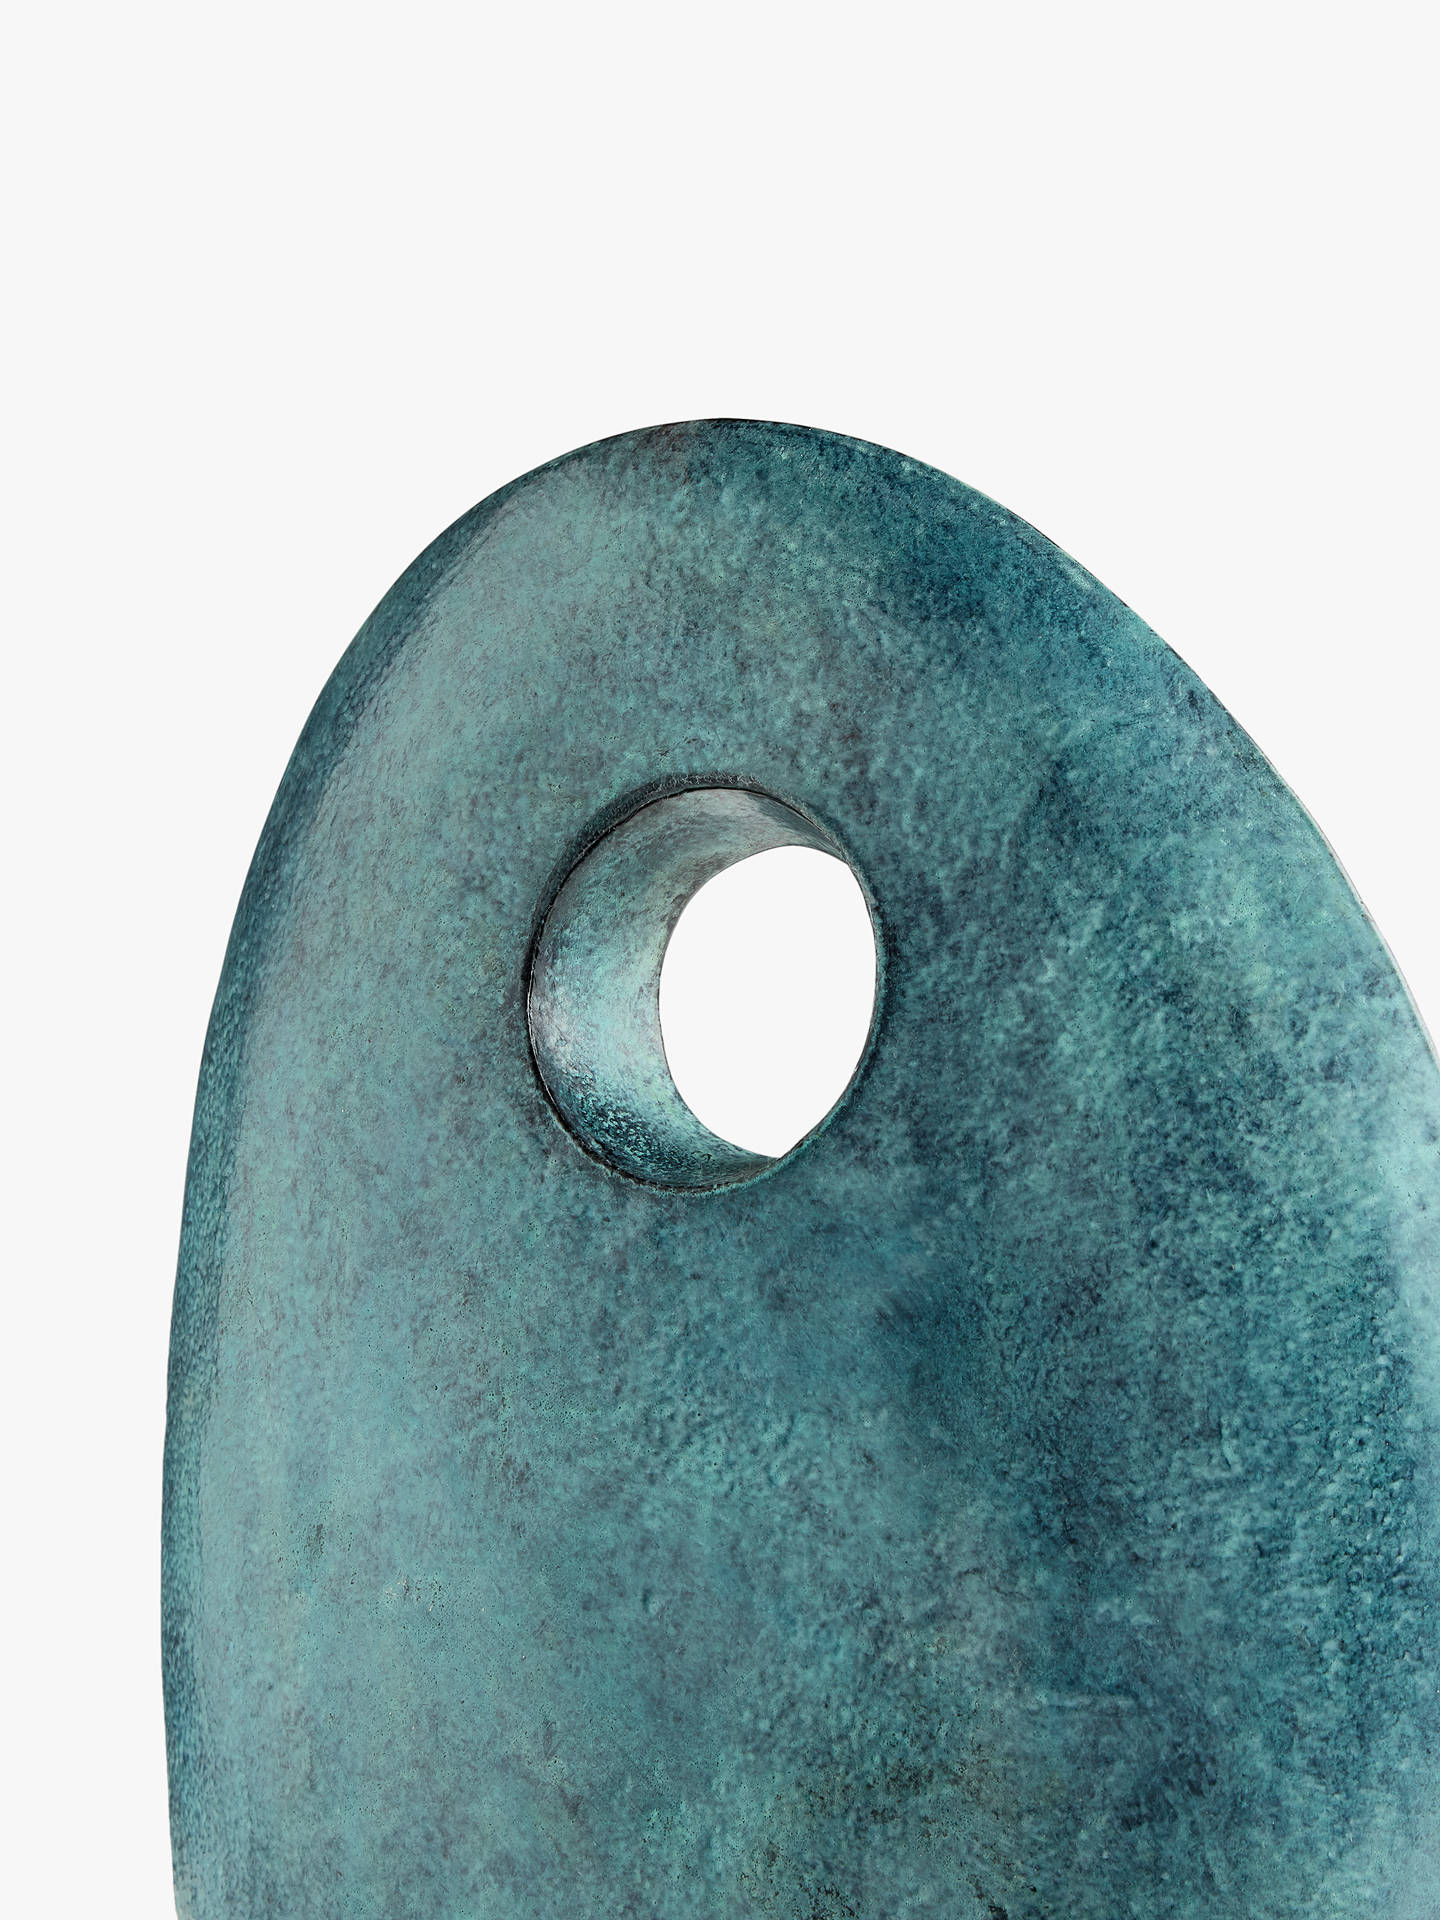 Buy John Lewis & Partners Patina Pebble Hole Sculpture, Green, H40.5cm Online at johnlewis.com